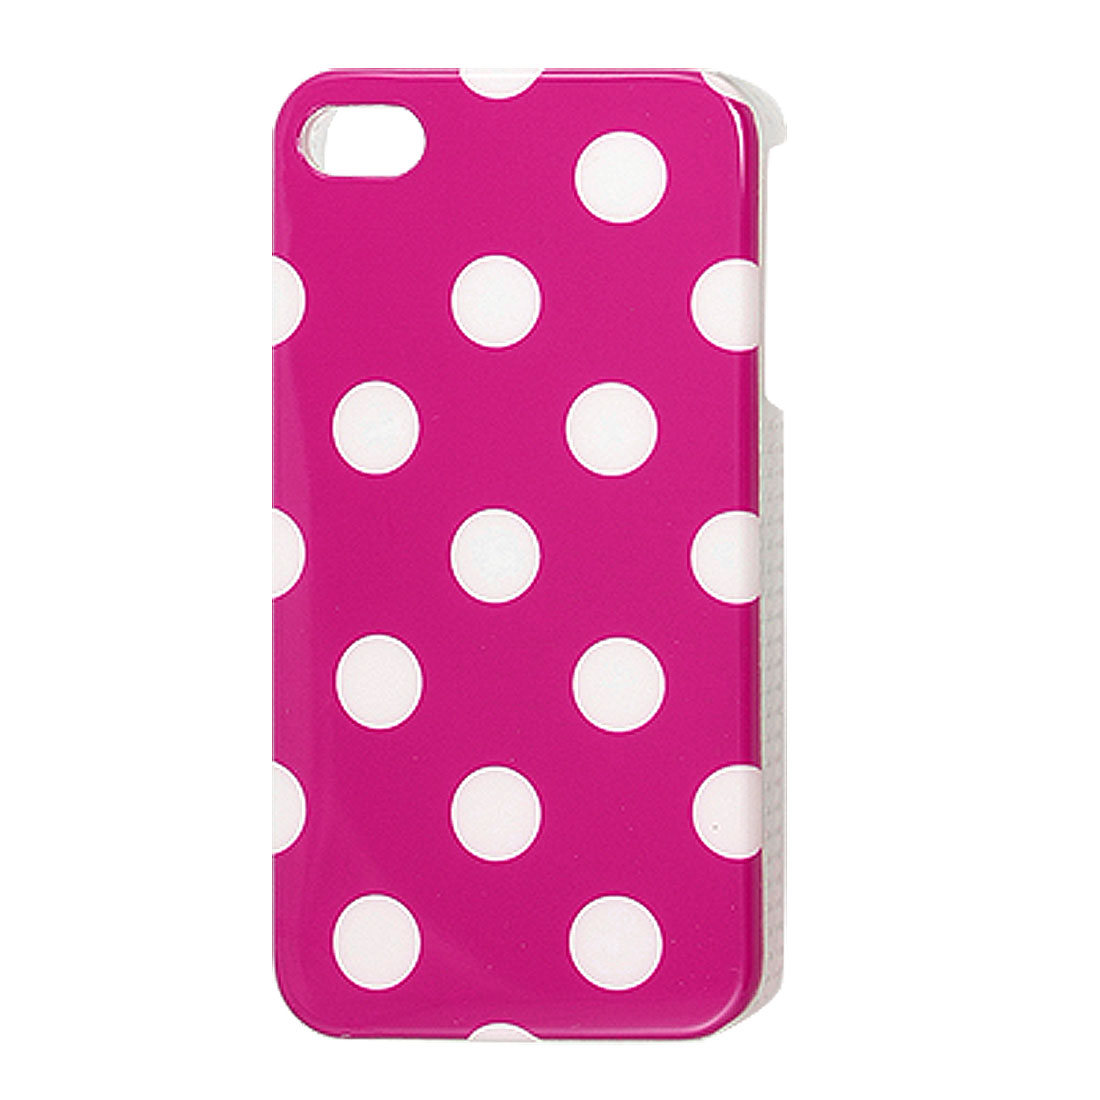 Plastic IMD White Dotted Hard Back Cover Case Fuchsia for iPhone 4 4G 4S